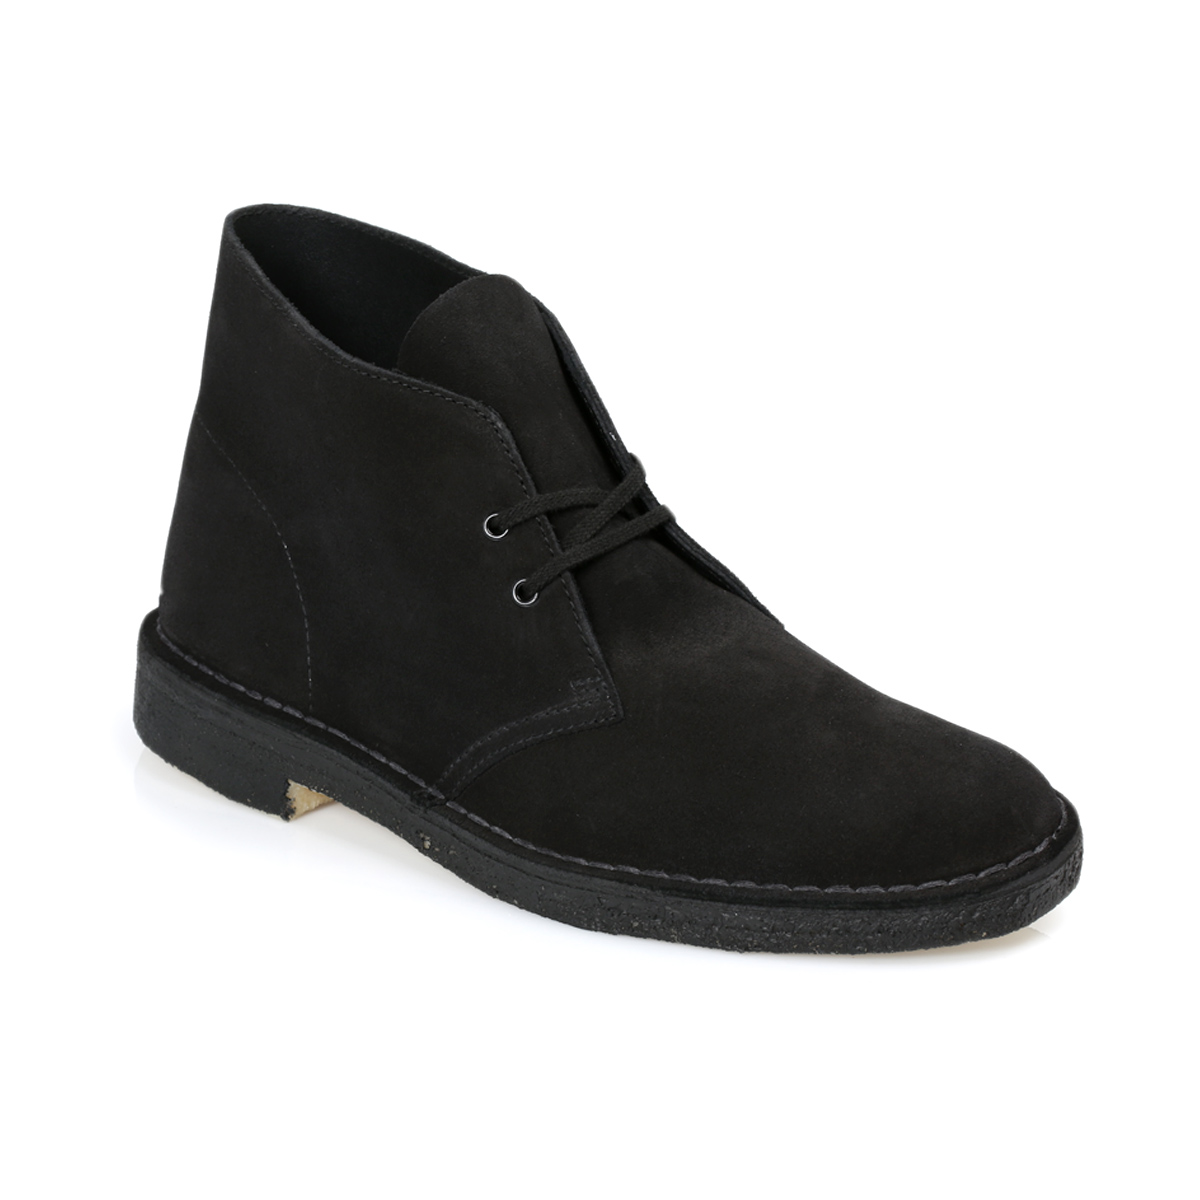 clarks black suede desert boots shoes size 8 11 ebay